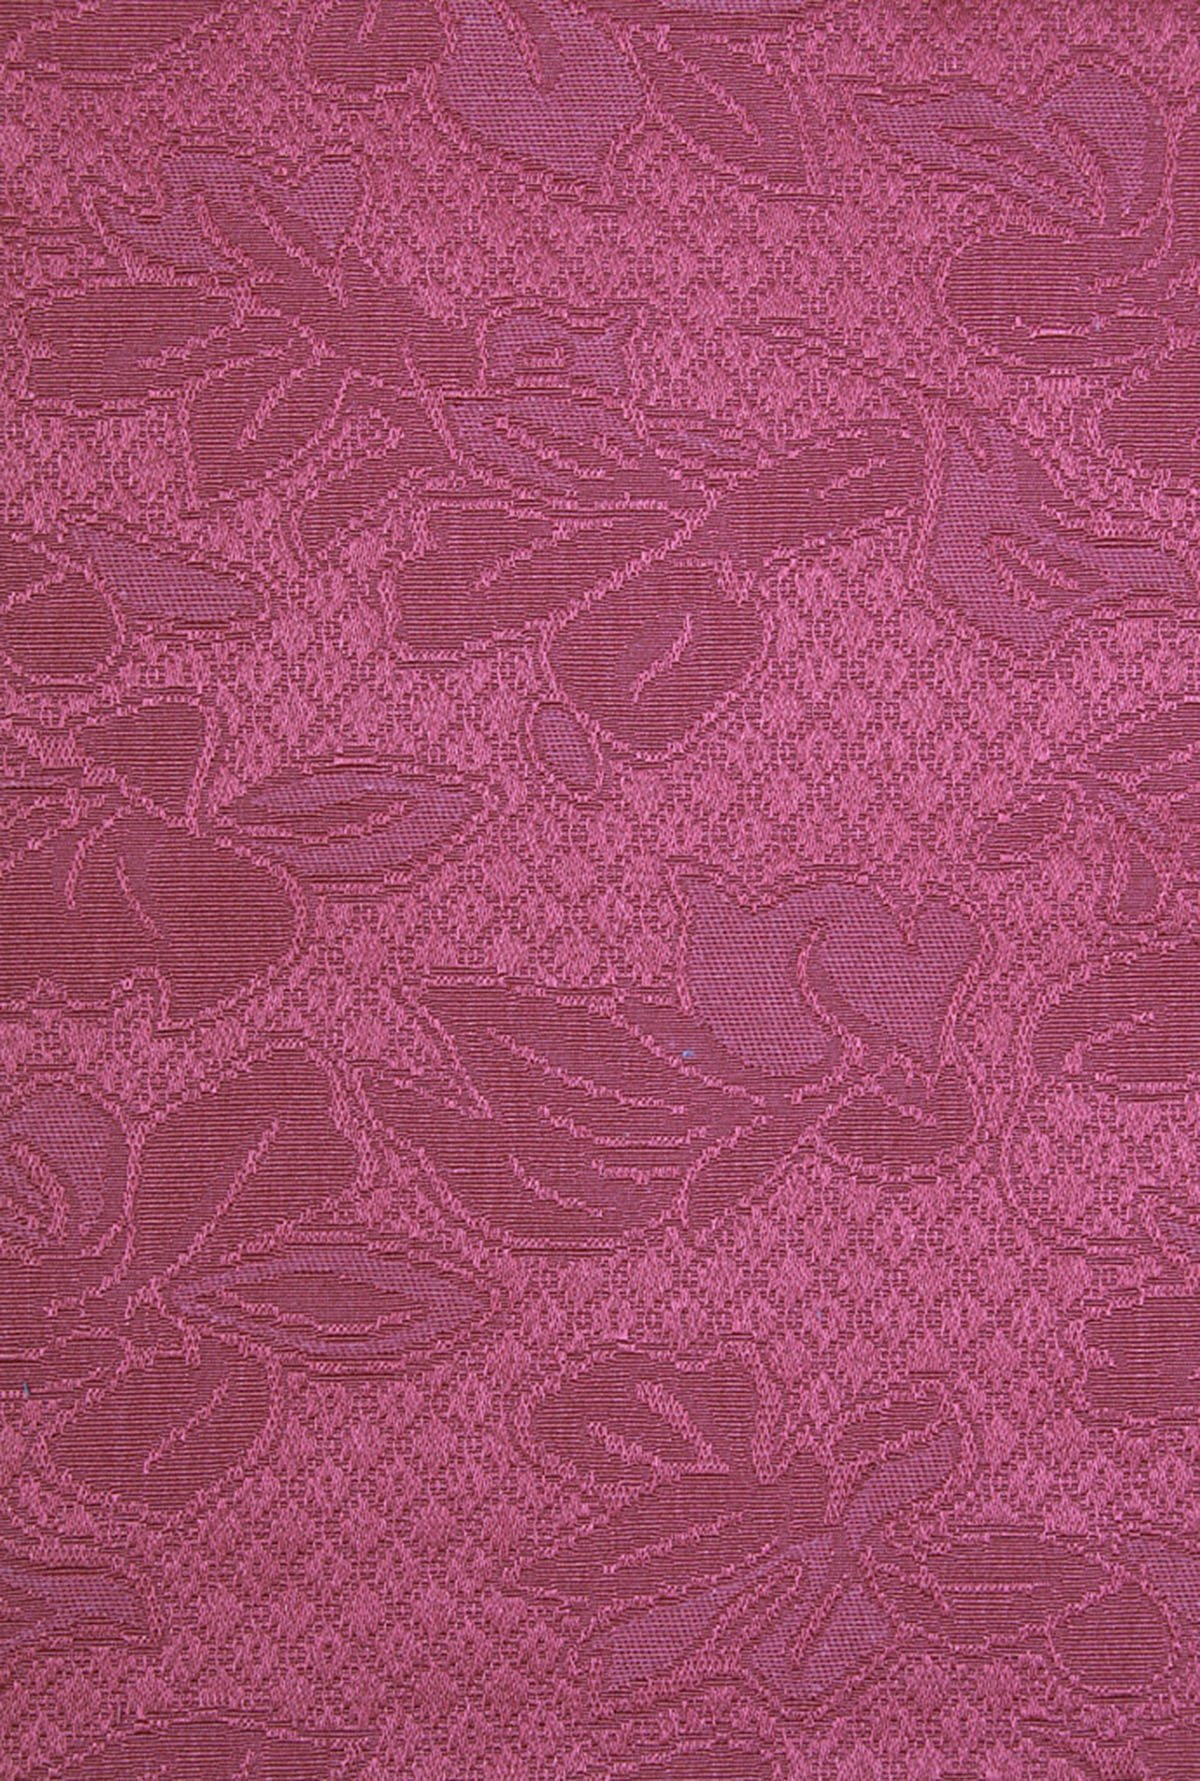 Healthcare Interiors Sea Spice Unquilted Twin Bed Spread (Merlot)